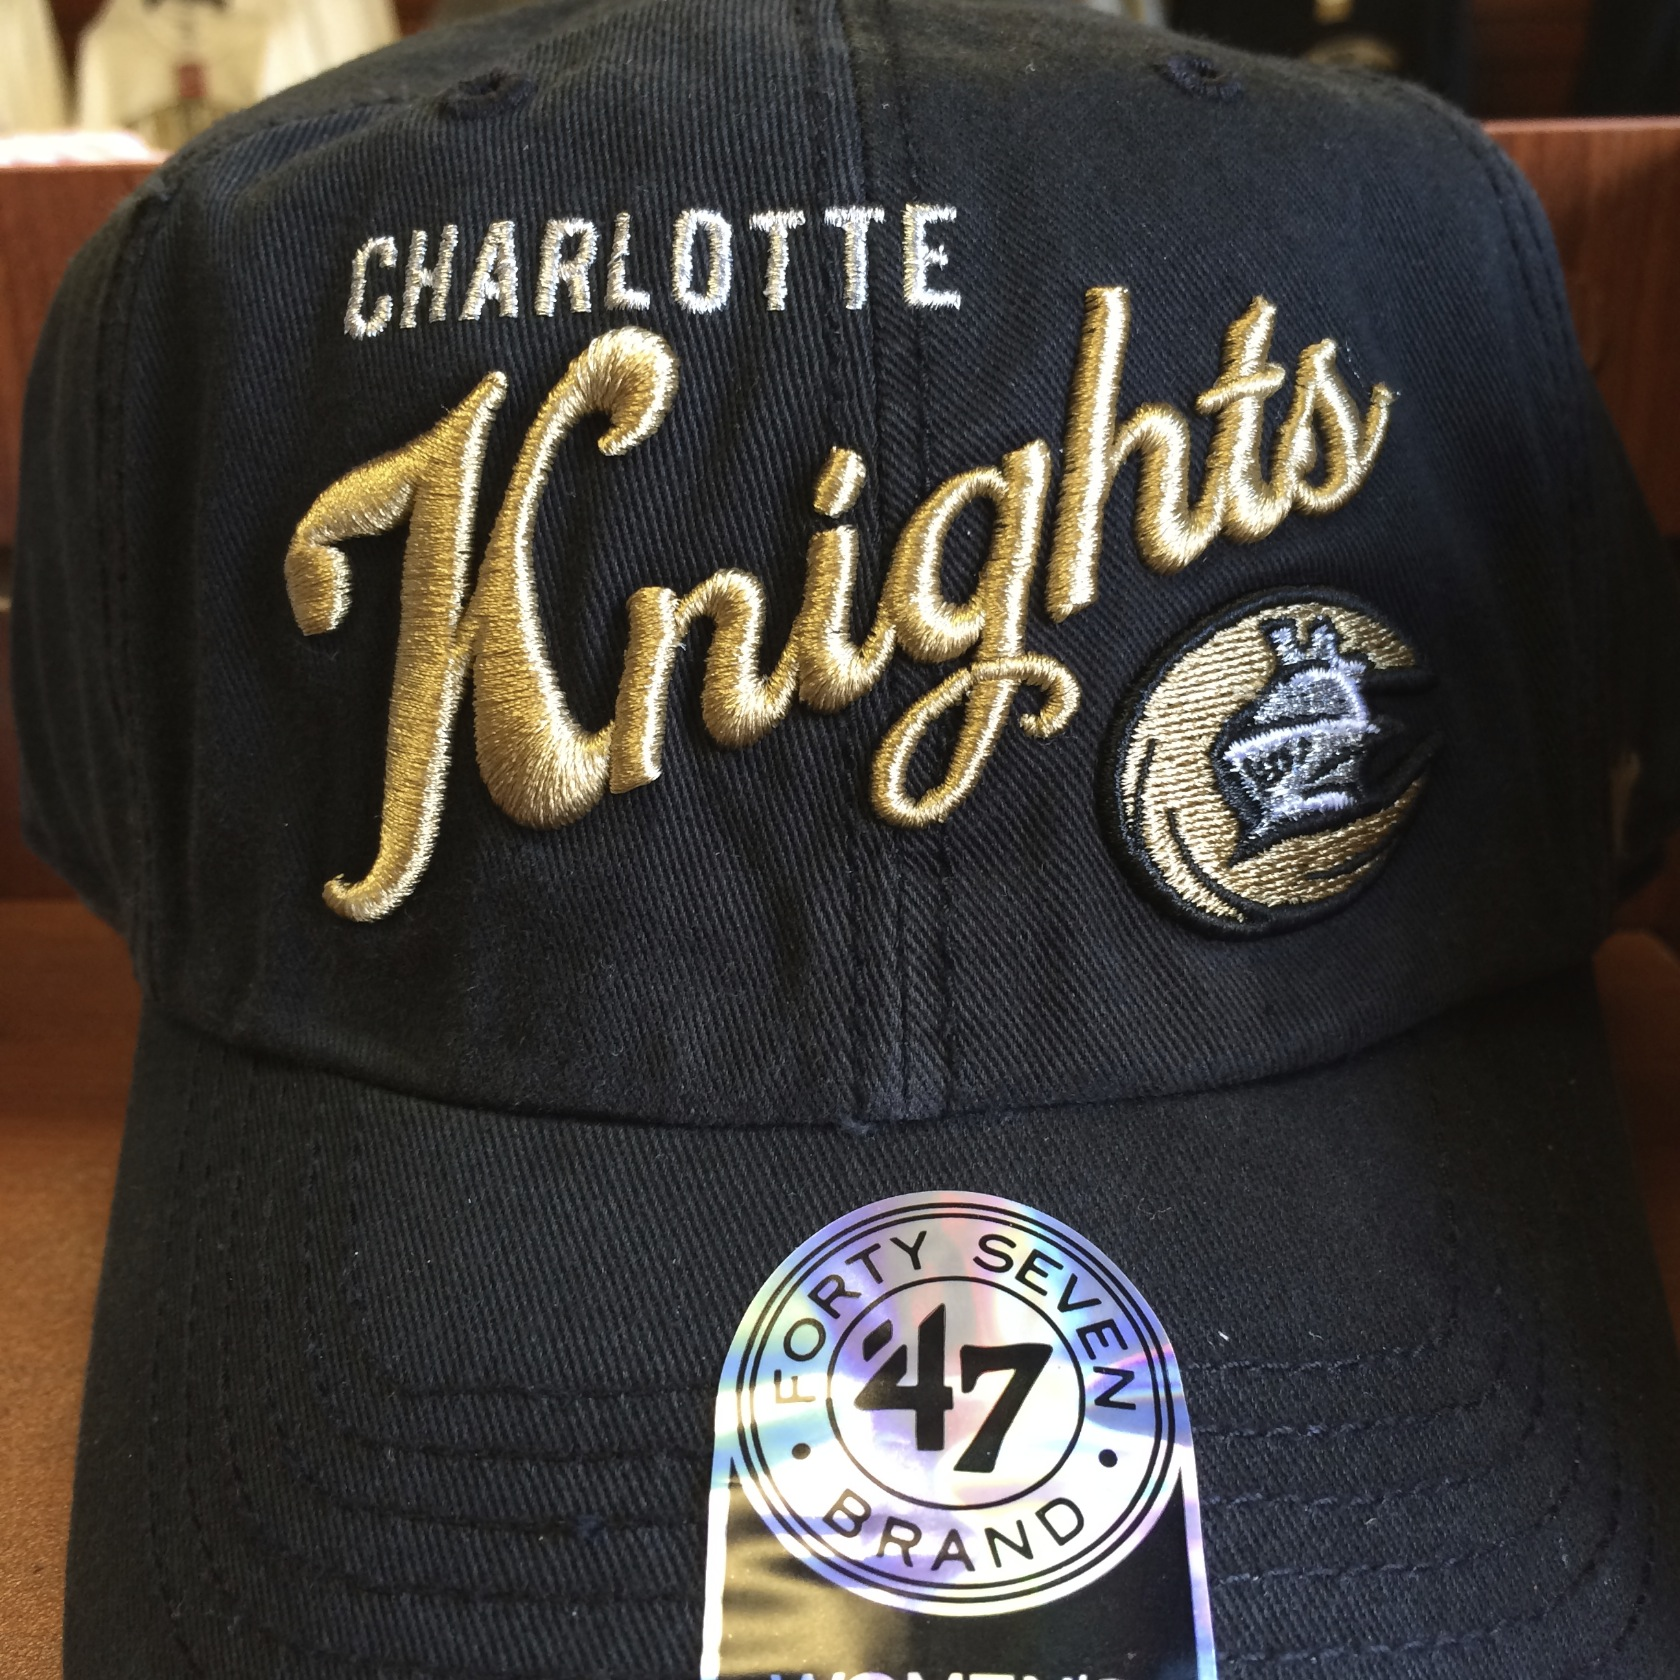 Welcome to Uptown, Charlotte Knights!